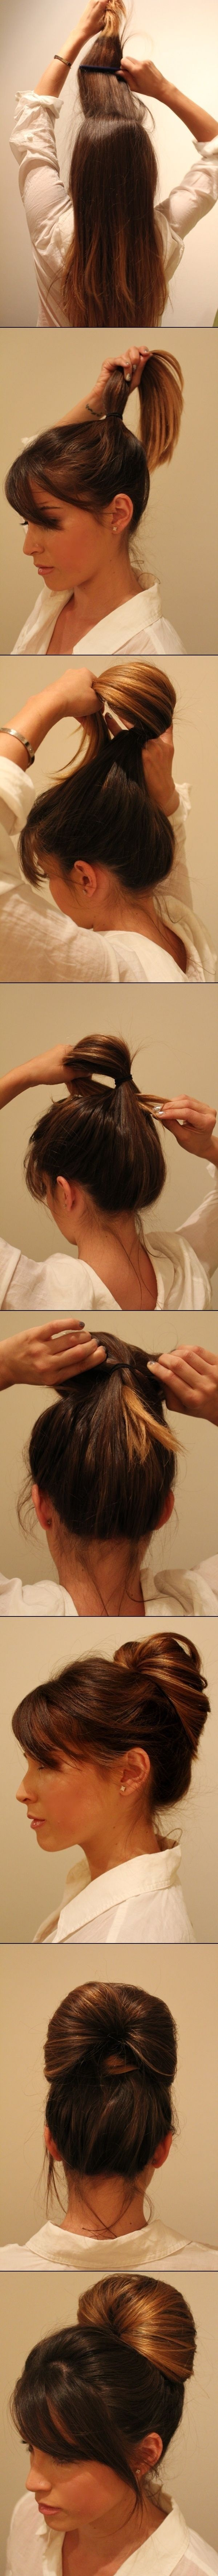 Simple Five Minute Hairstyles (44)